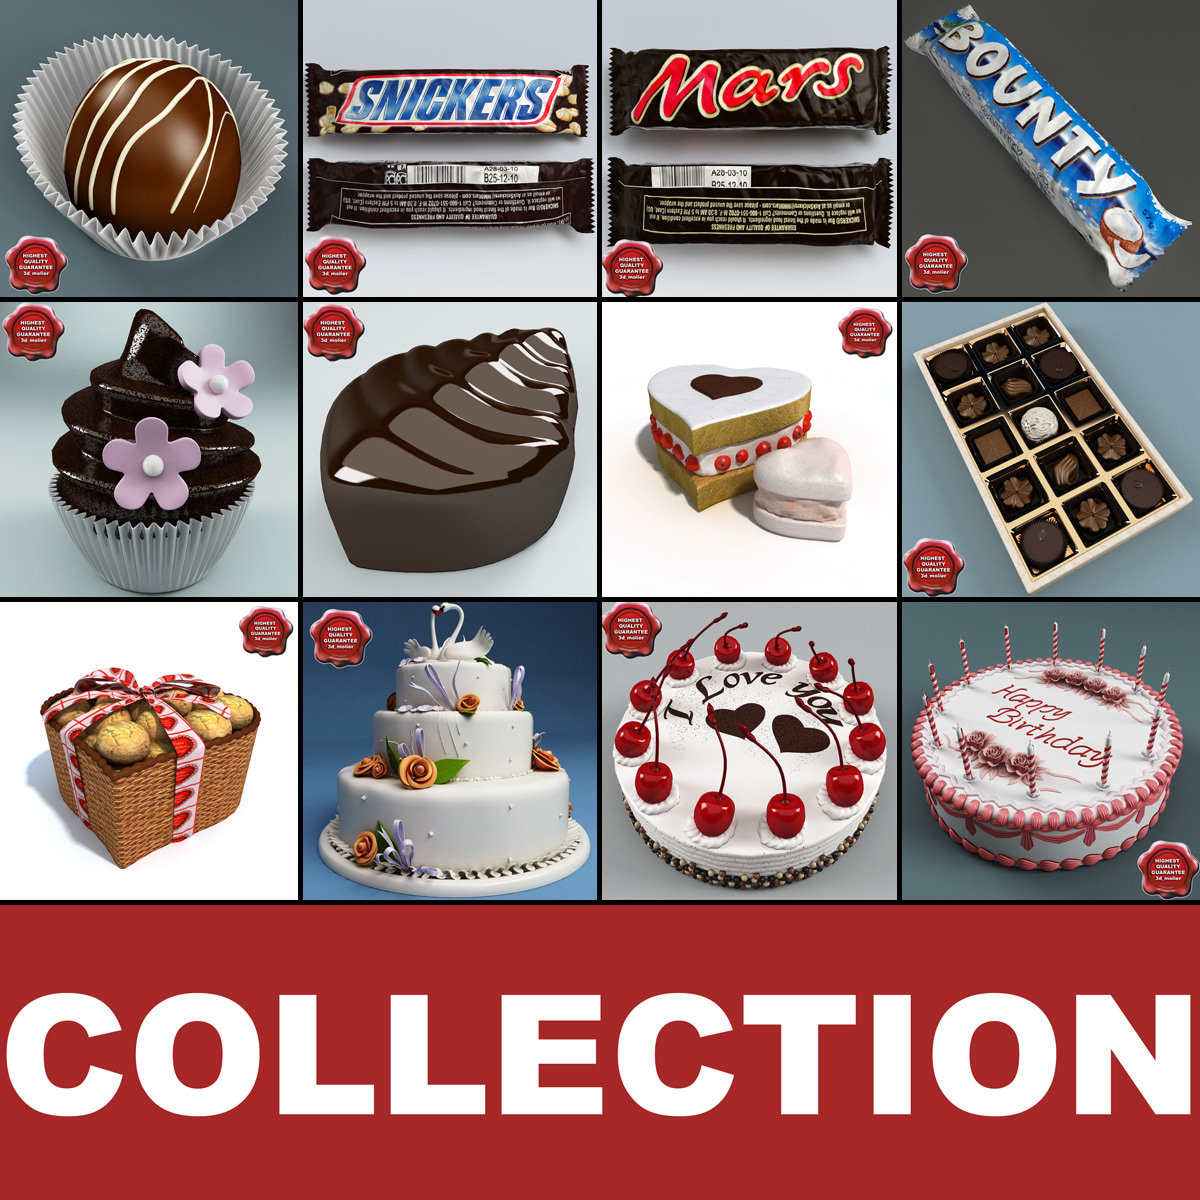 Sweets_Collection_00.jpg